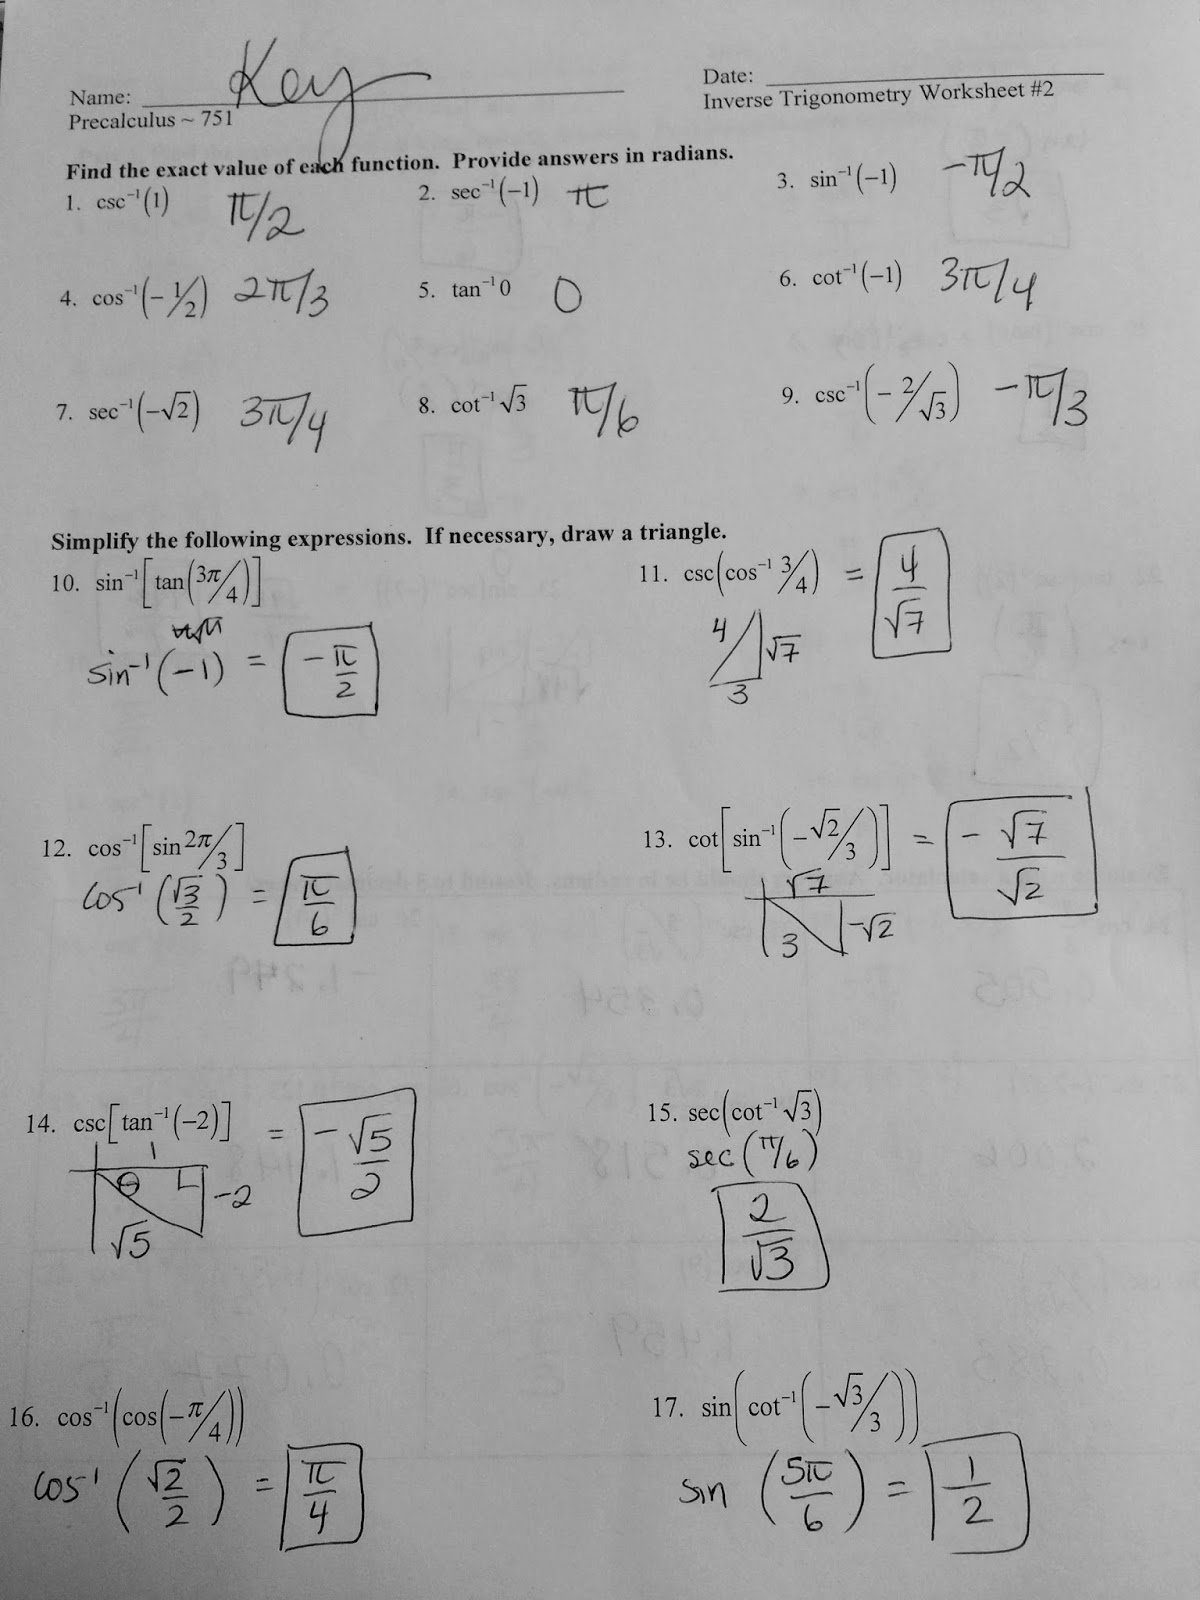 Precalculus Inverse Functions Worksheet Answers